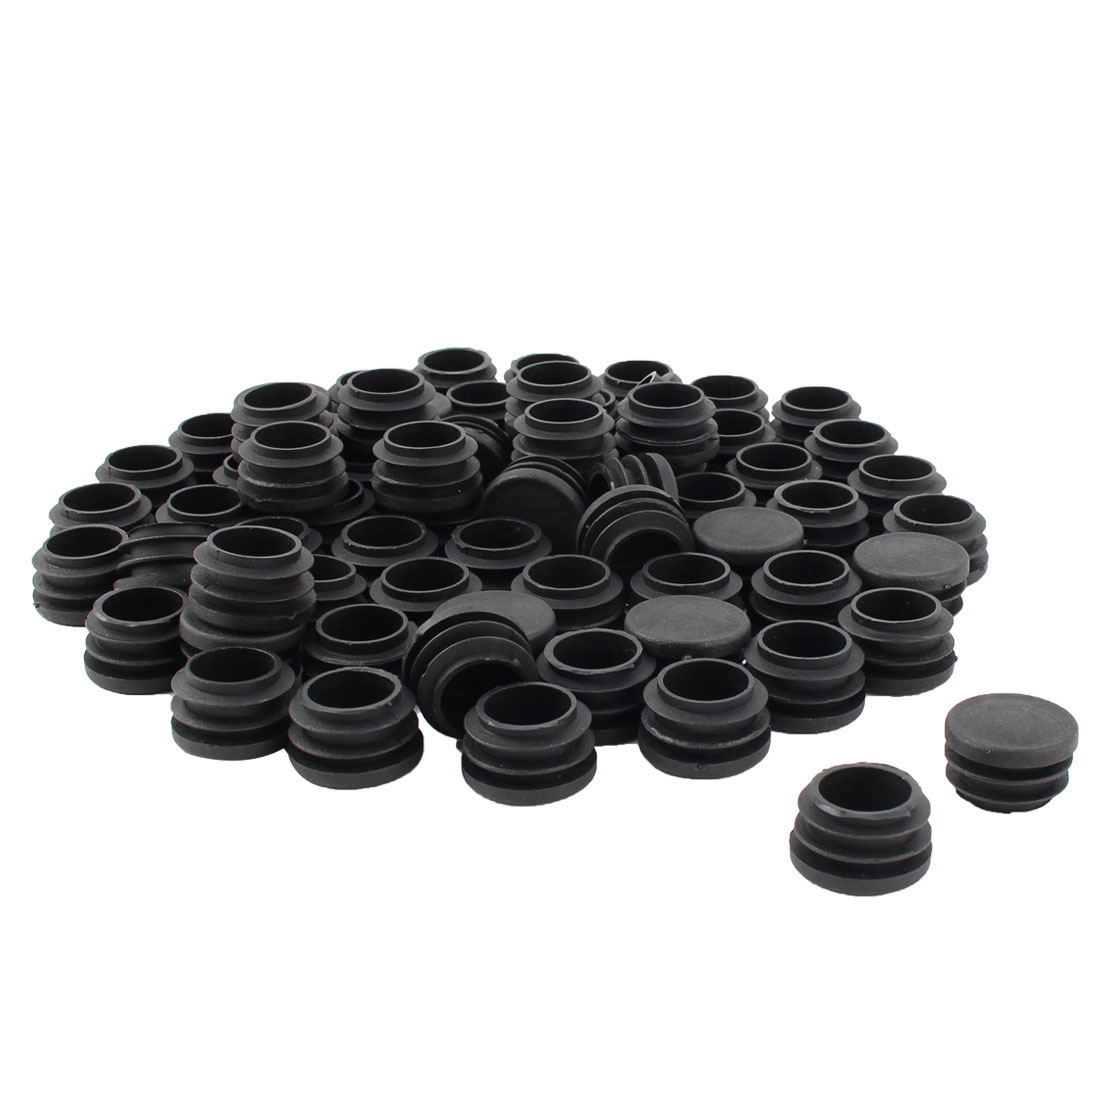 Furniture Table Chair Legs Plastic Flat Base Round Tube Pipe Insert Cap Cover Black 28mm Dia 70pcs